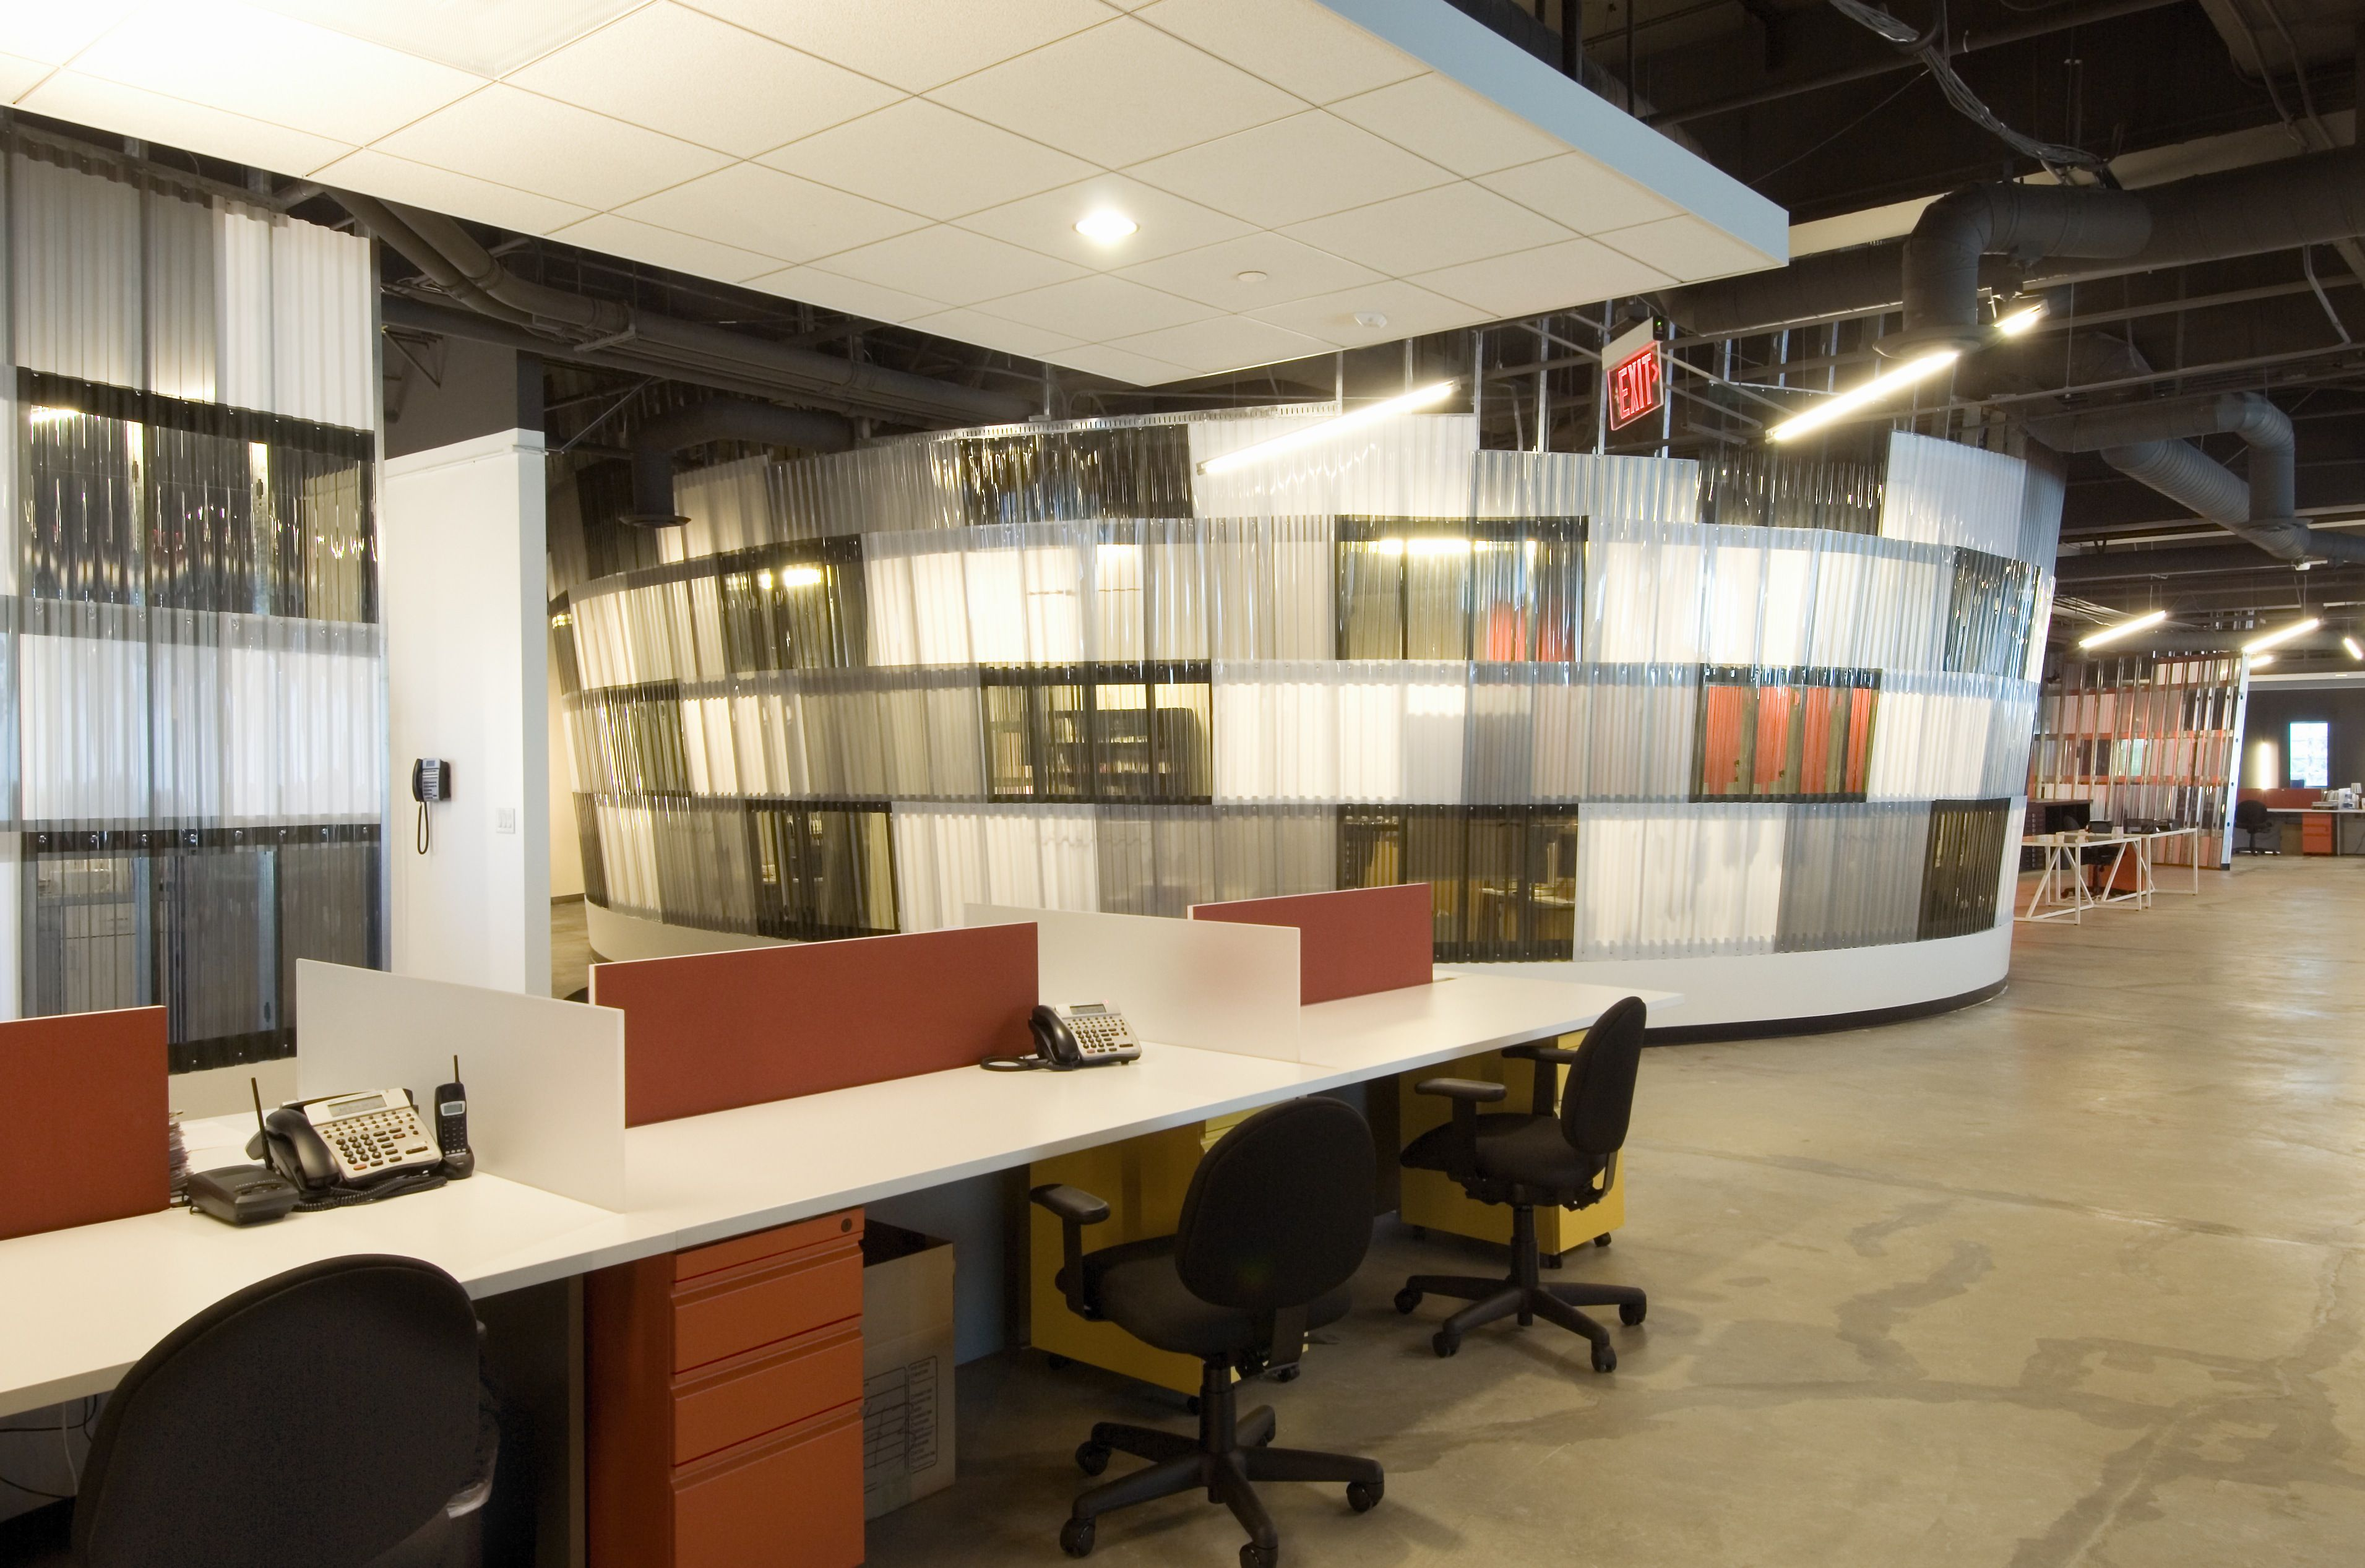 large office space. #Modern #workstations For A Large #office Space With #geometric Designs #dtank Office